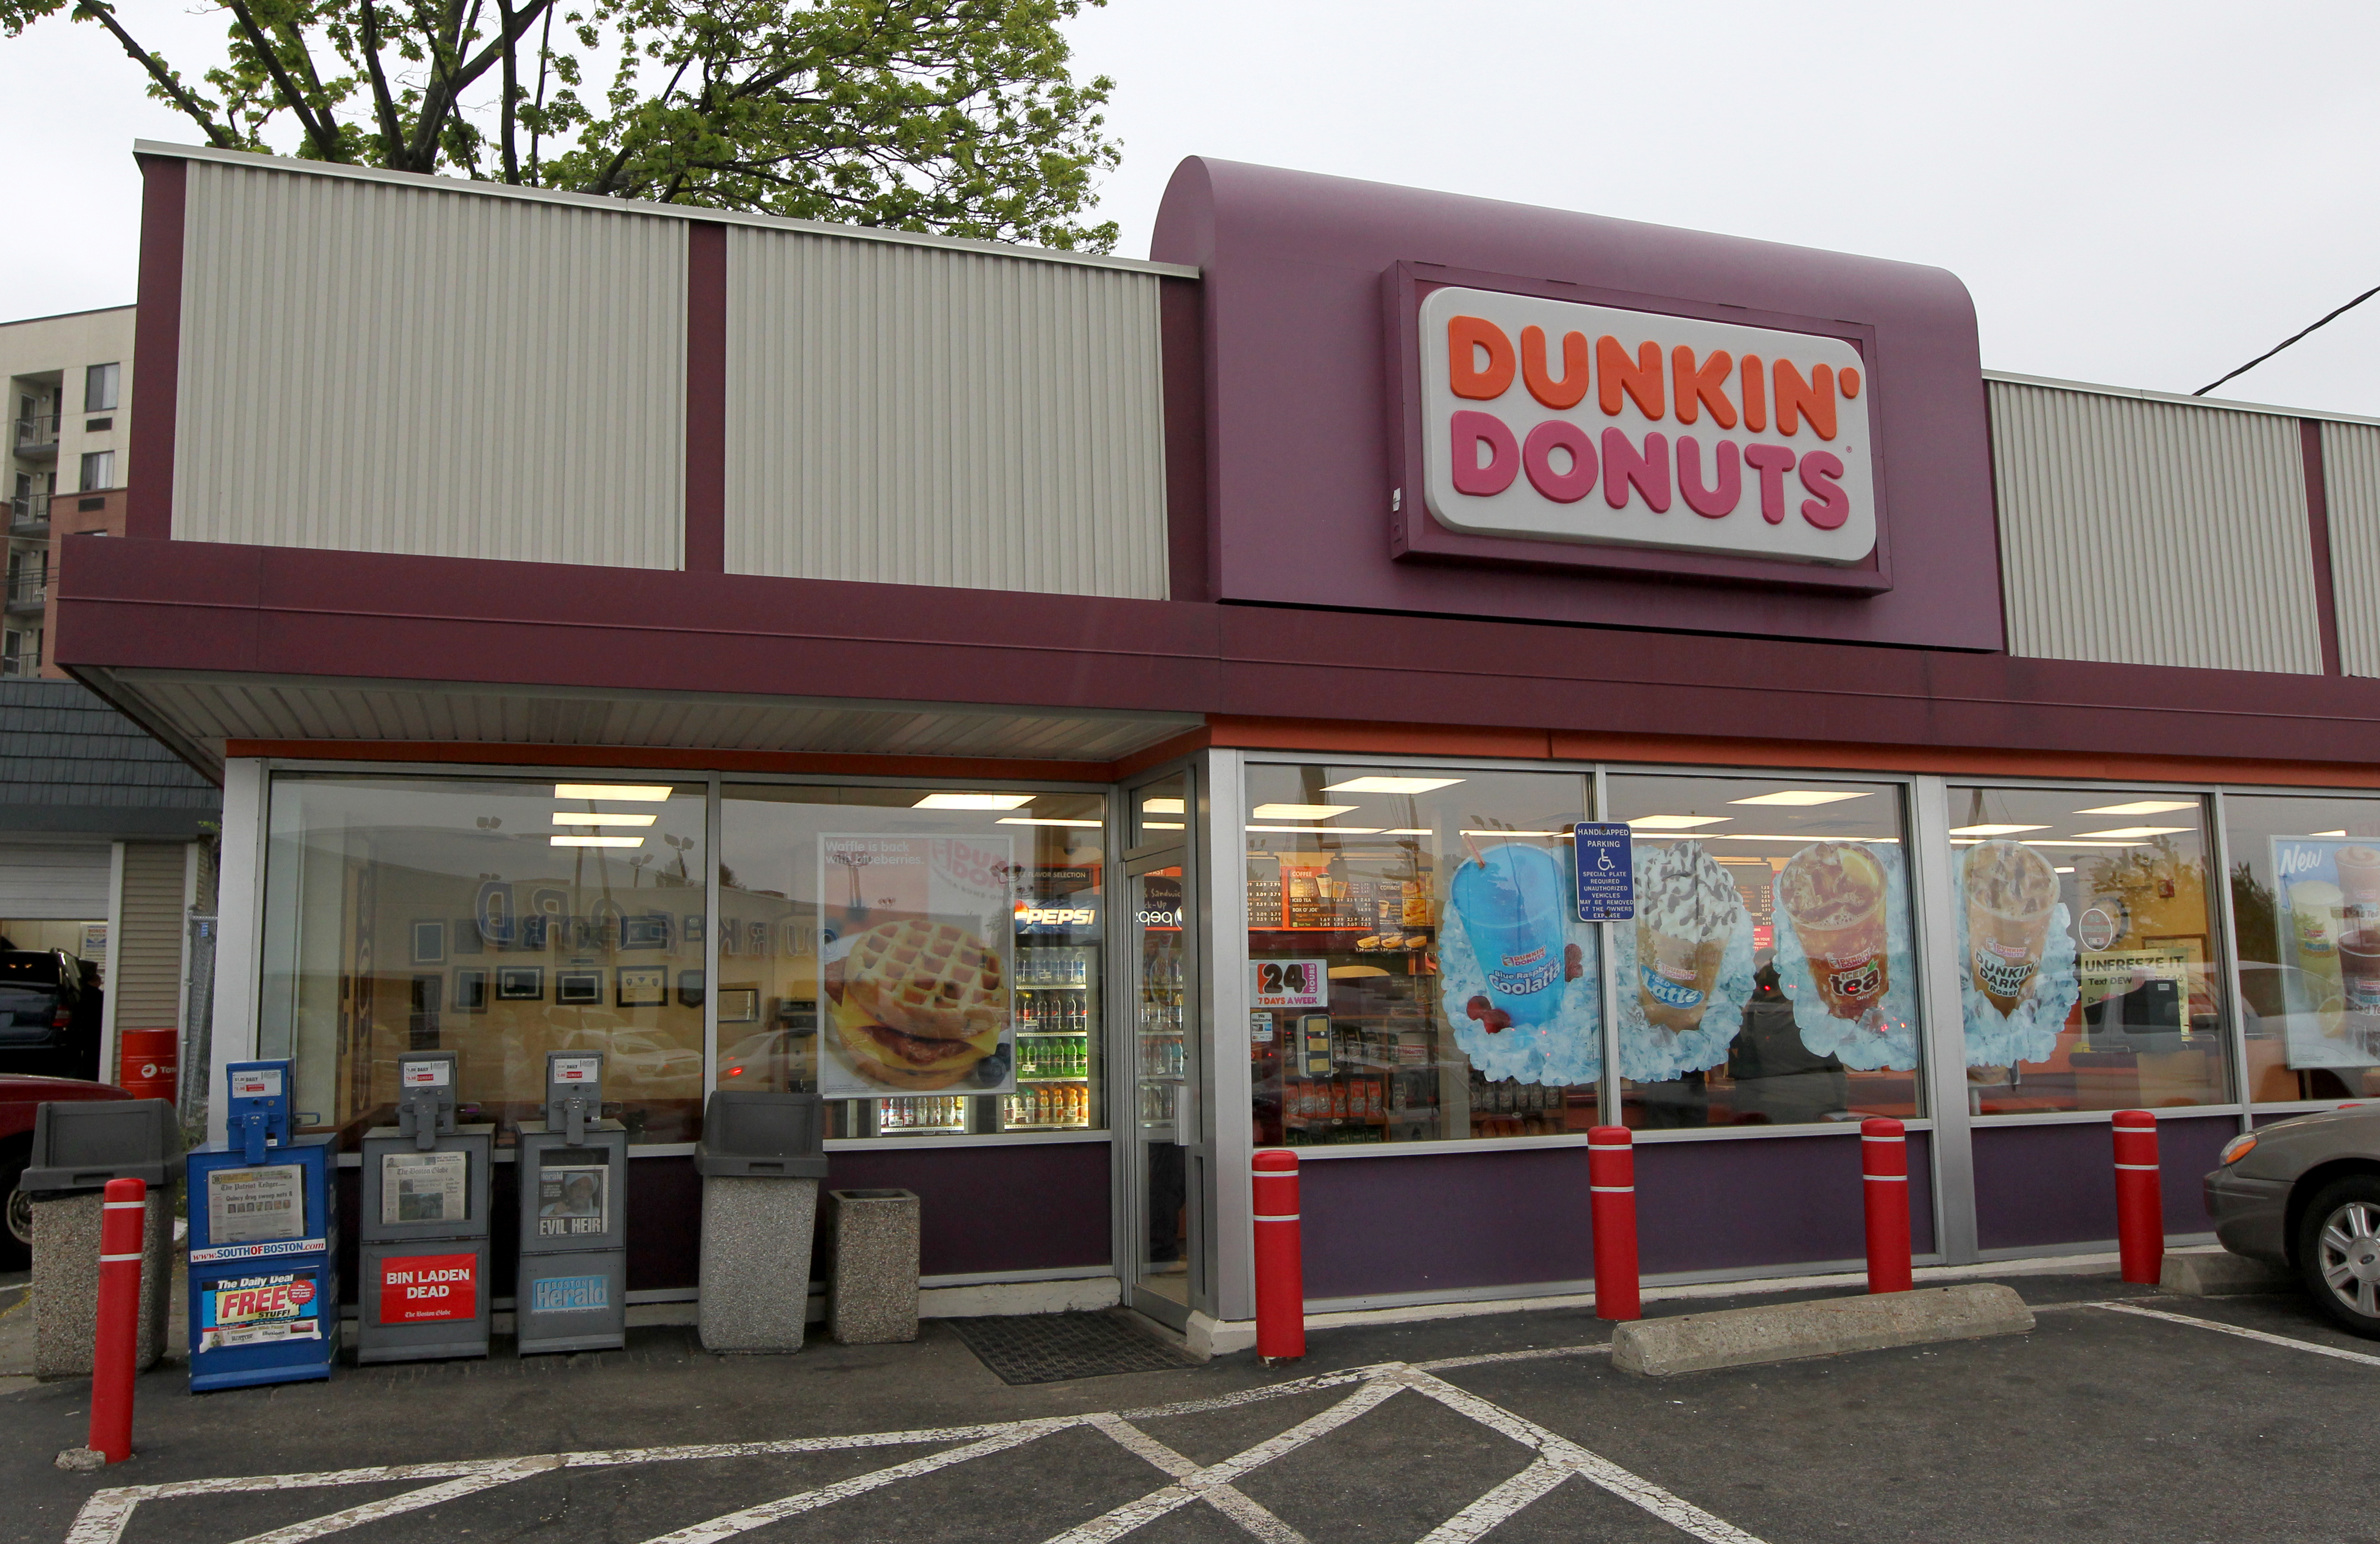 Here's what Dunkin' Donuts dropped from its menu - The